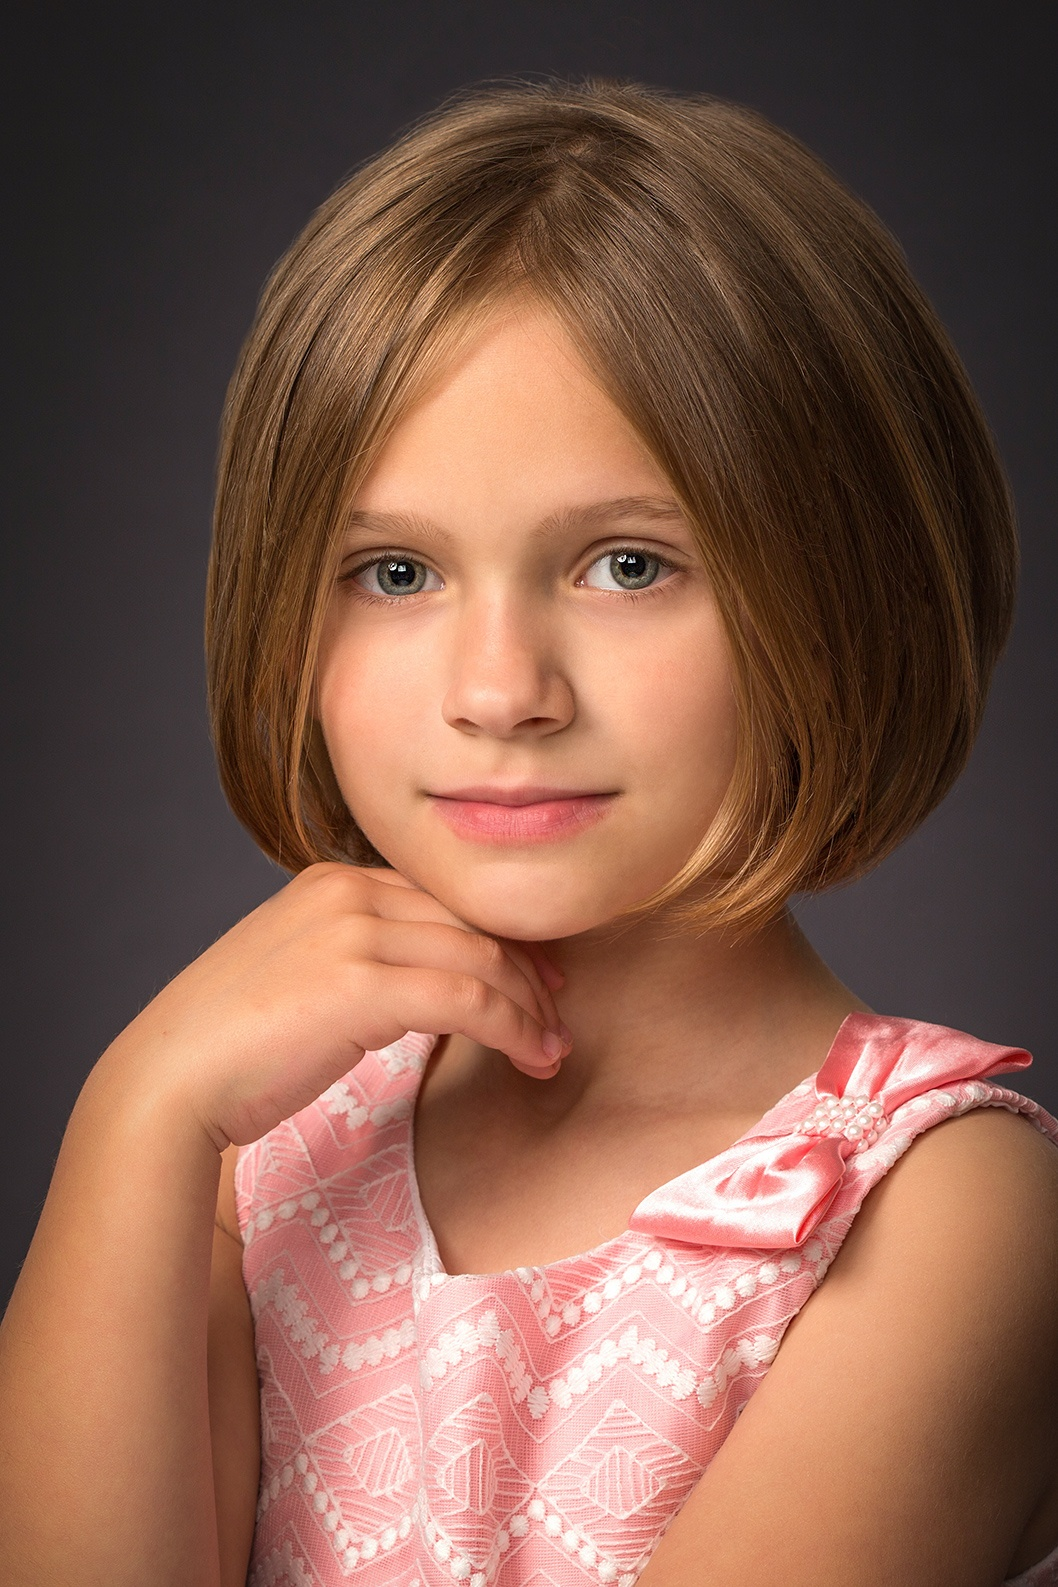 Painted portrait of a young girl, by Hugh Anderson Photography.